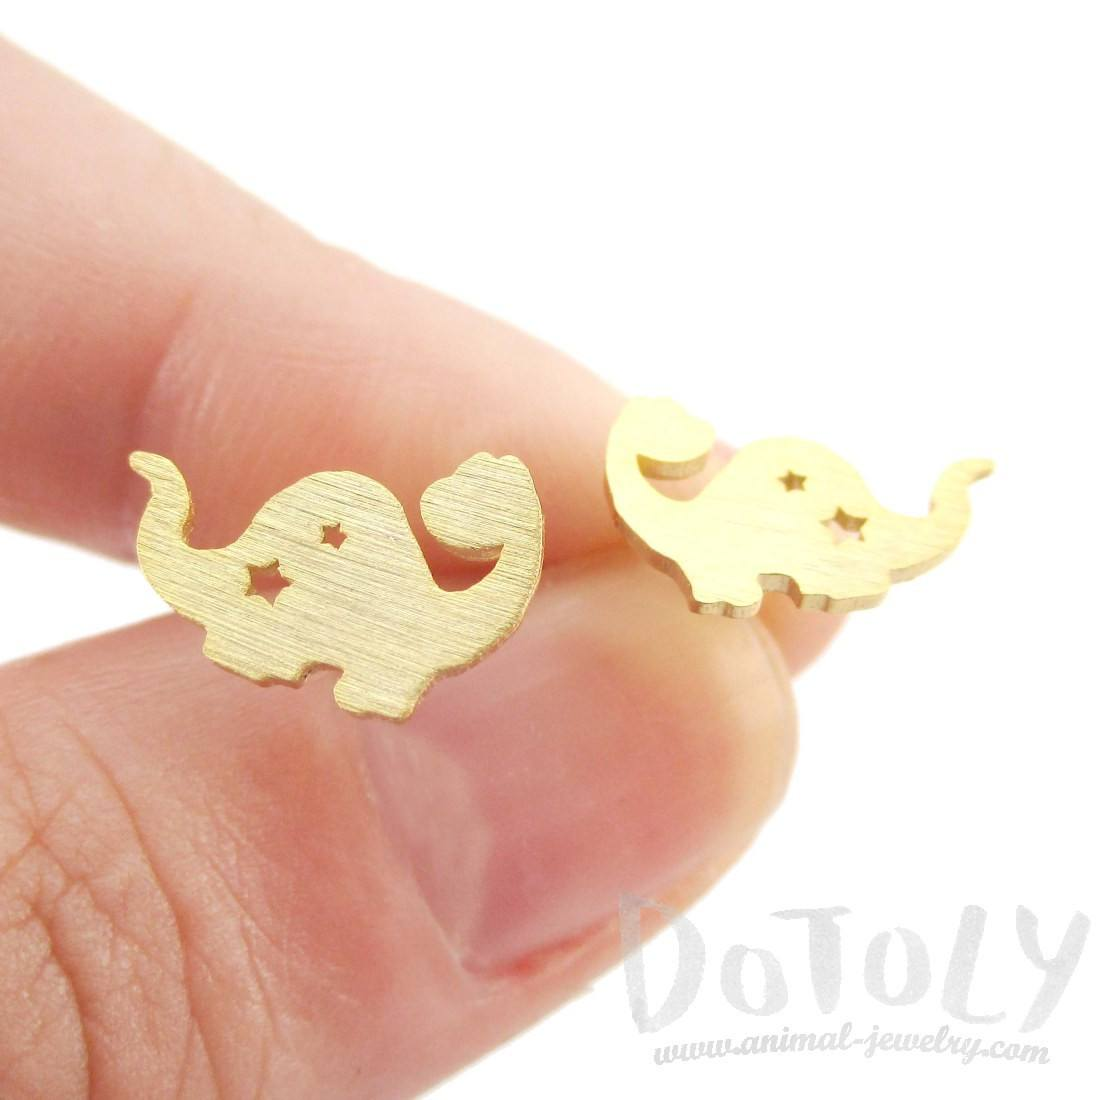 The Good Dinosaur Apatosaurus with Star Cut Out Stud Earrings in Gold